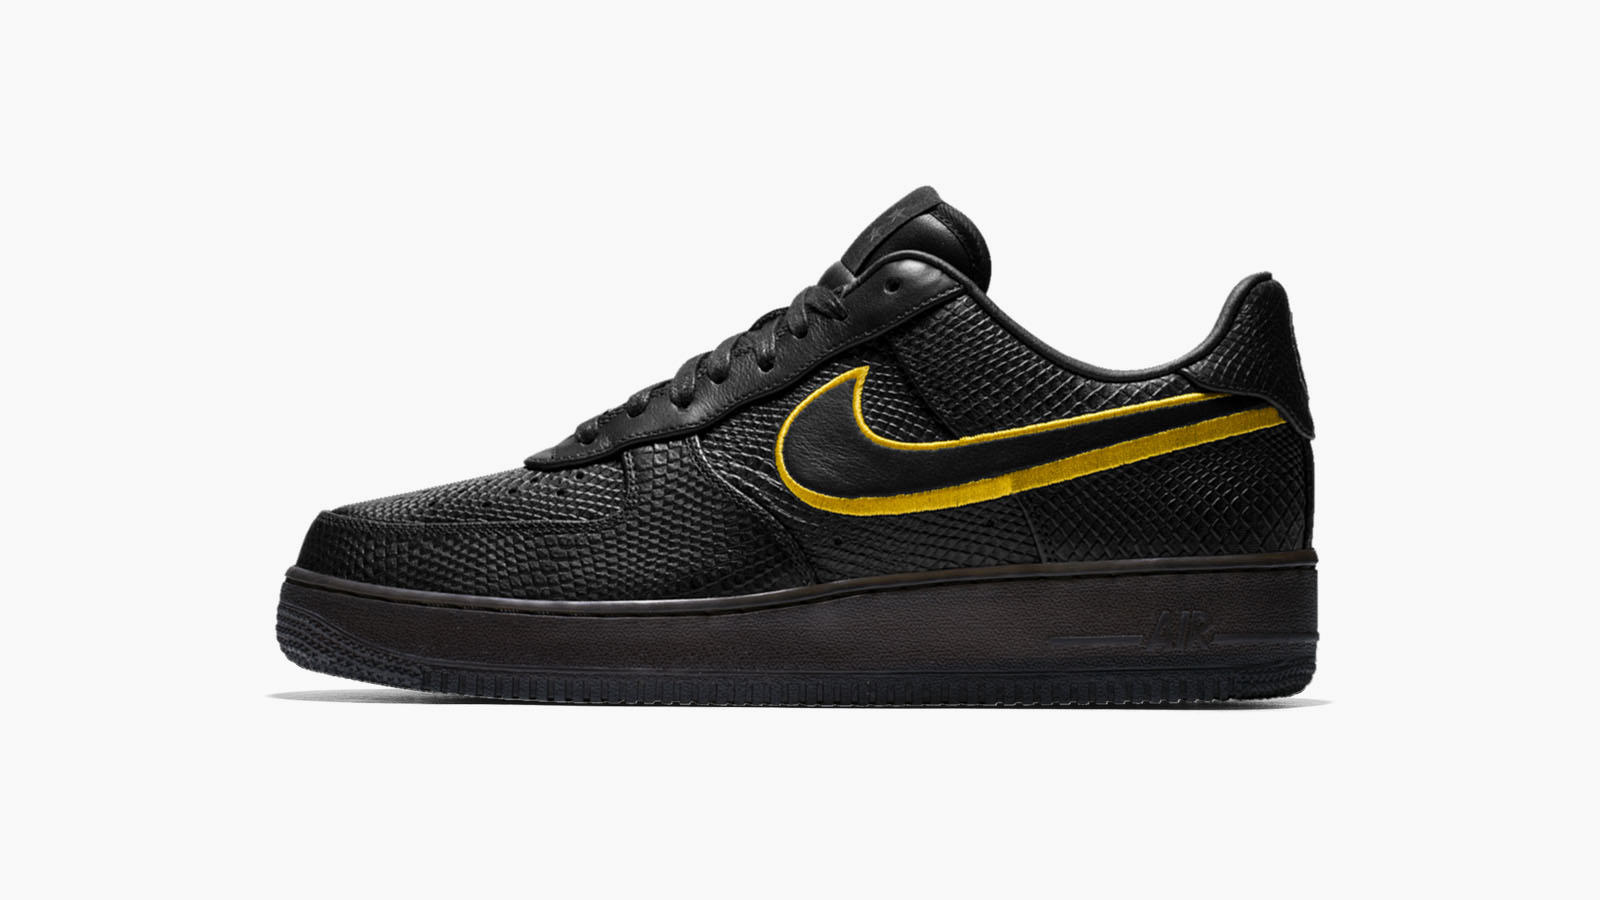 Five Things to Know About the Commemorative Kobe Bryant Black Mamba Air Force 1 10